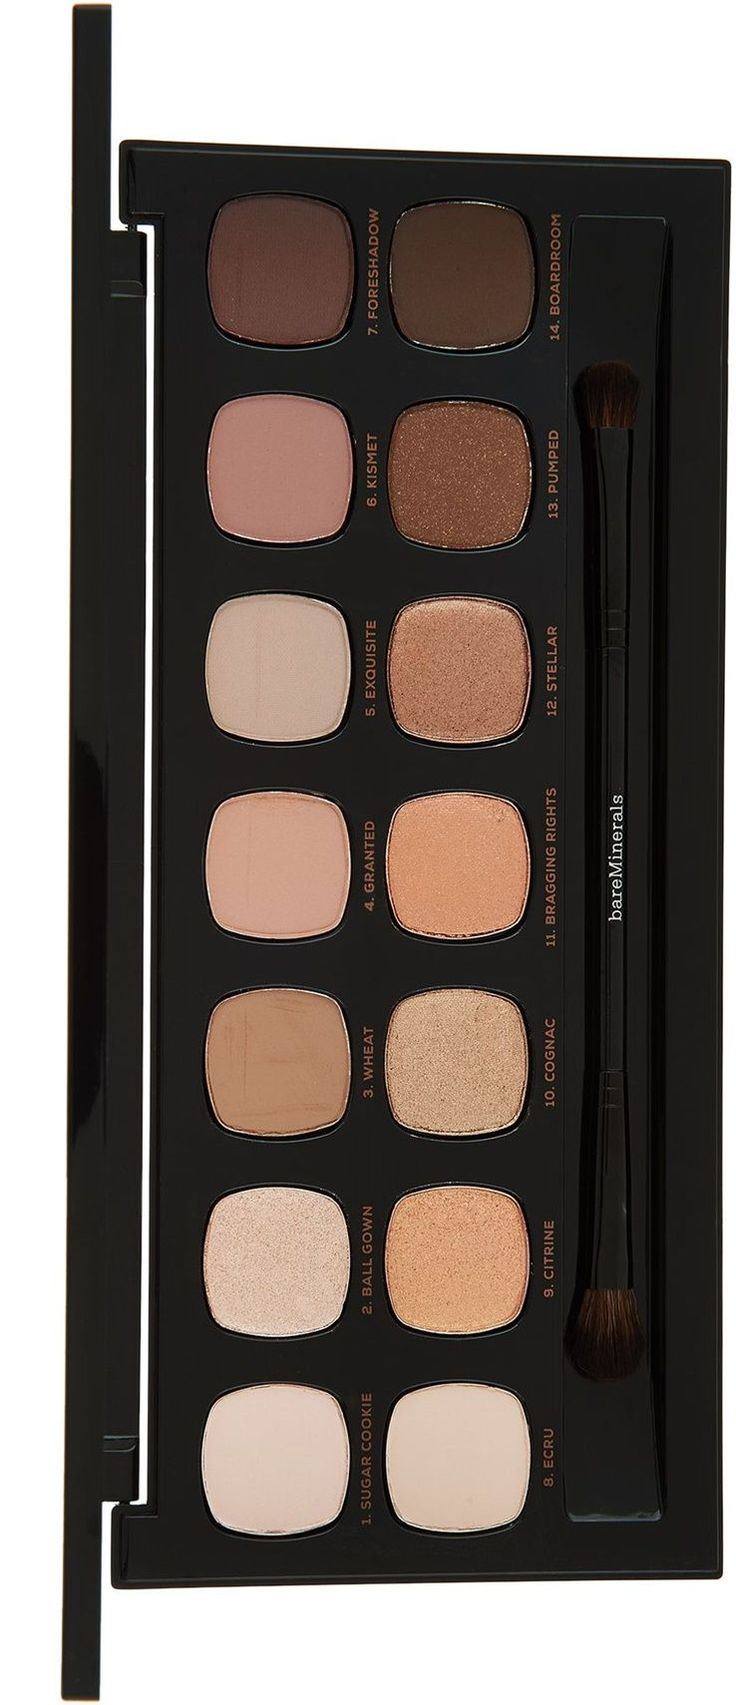 Another day, another 14.0 Ready Eyeshadow Palette! The Bare Minerals The Bare Metals Ready Eyeshadow Palette ($40) is a new delicious nude palette inspired